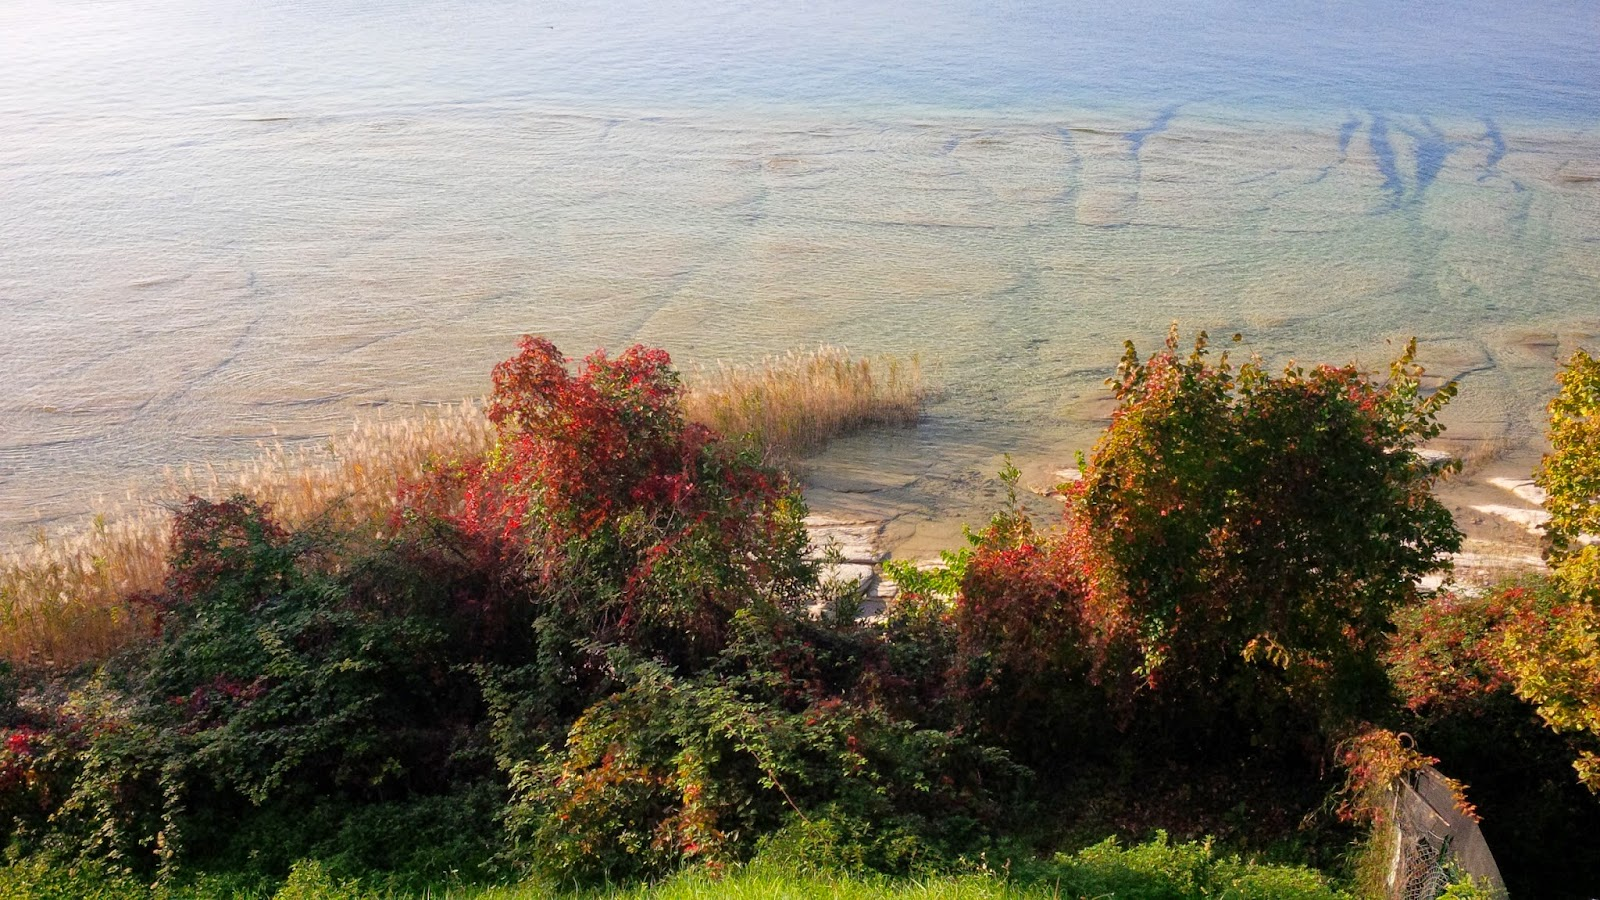 Lake Garda seen from Grotte di Catullo